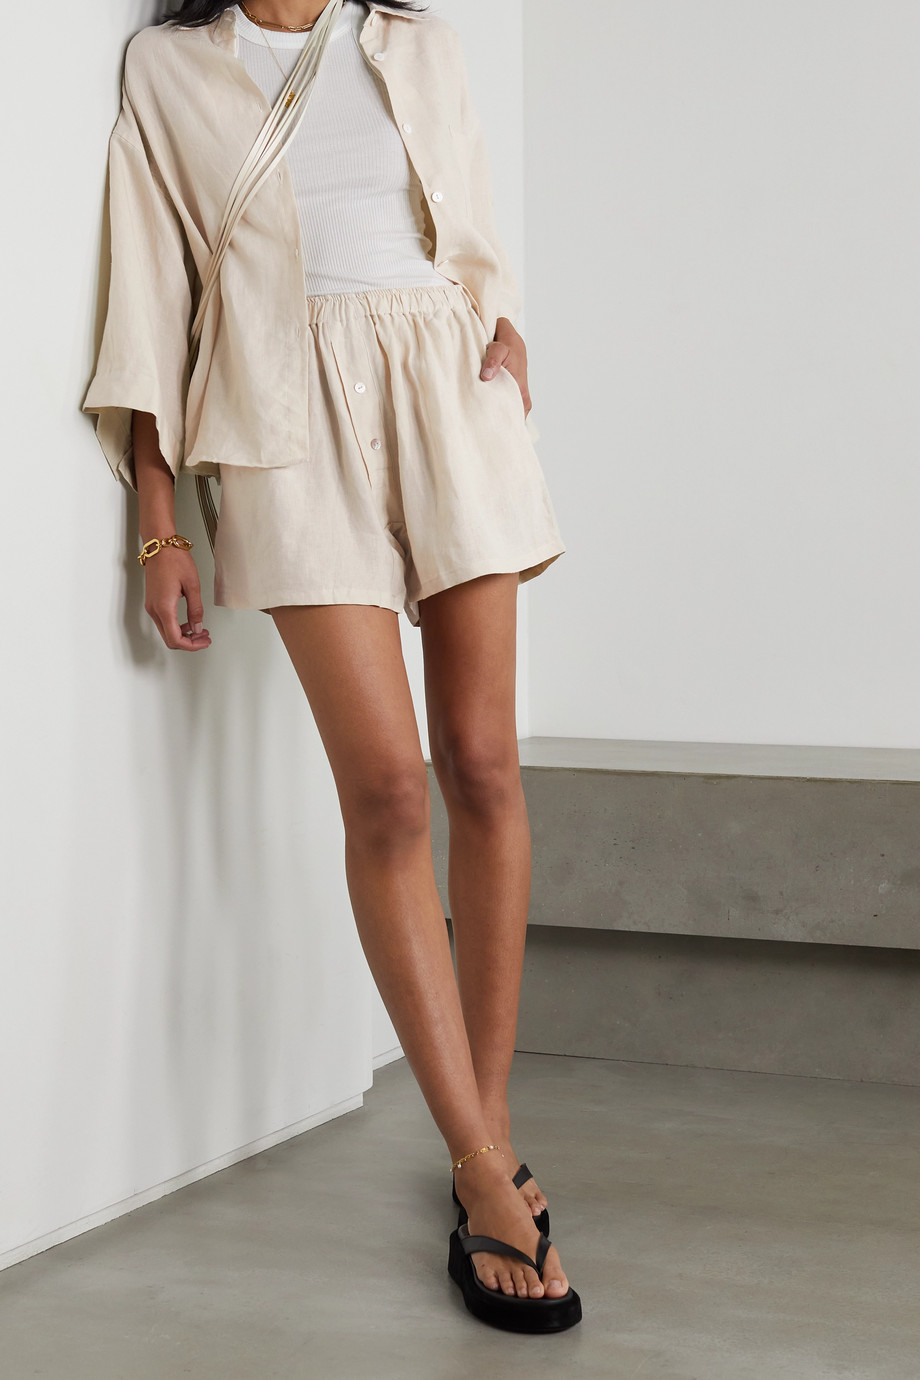 DEIJI STUDIOS The 03 washed-linen shirt and shorts set